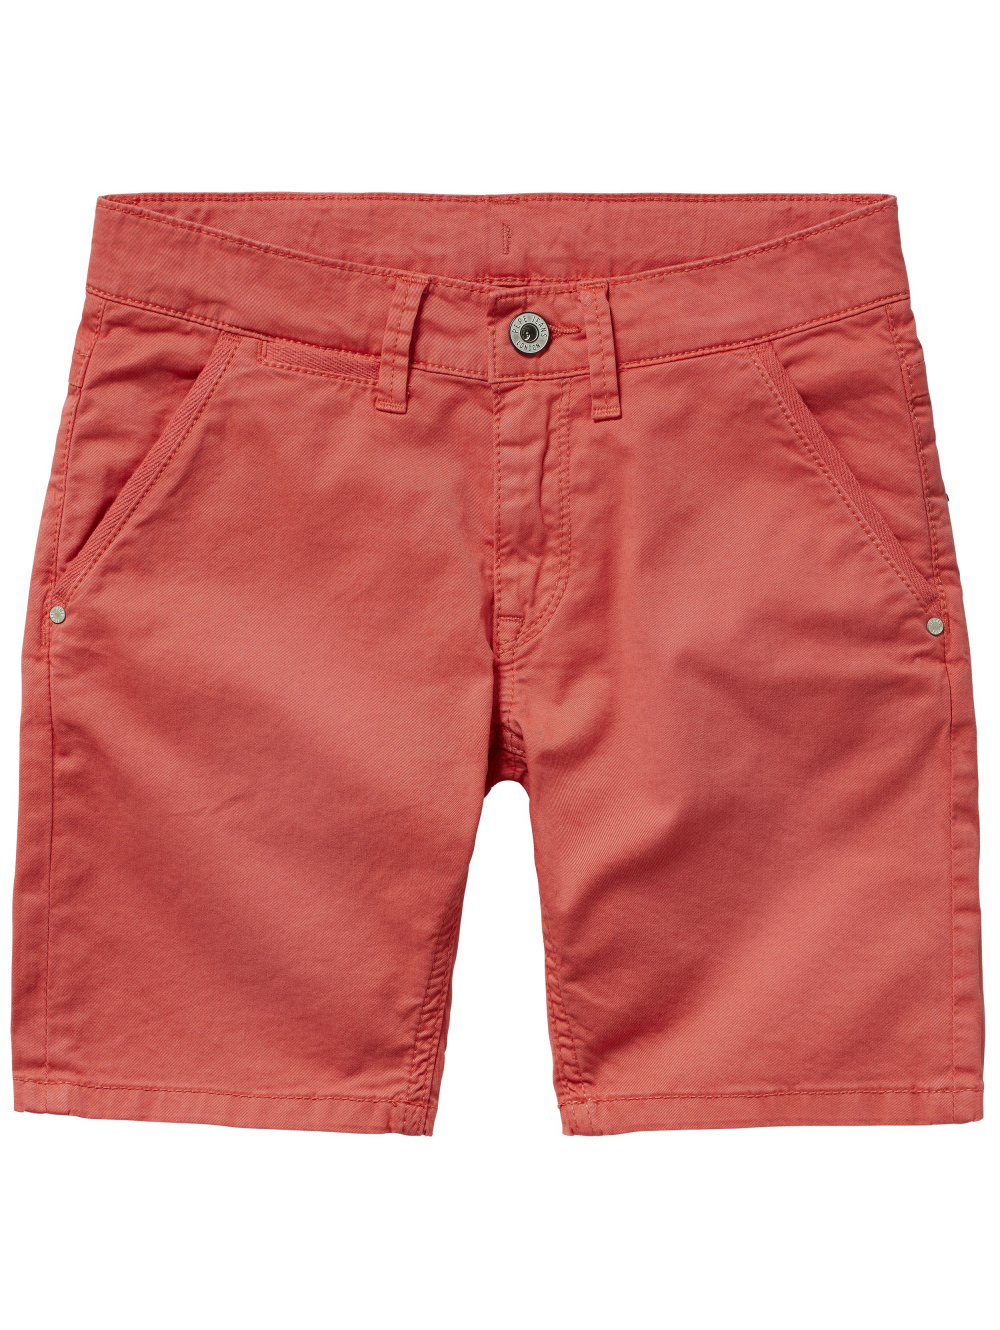 Short fille rouge PEPE JEANS